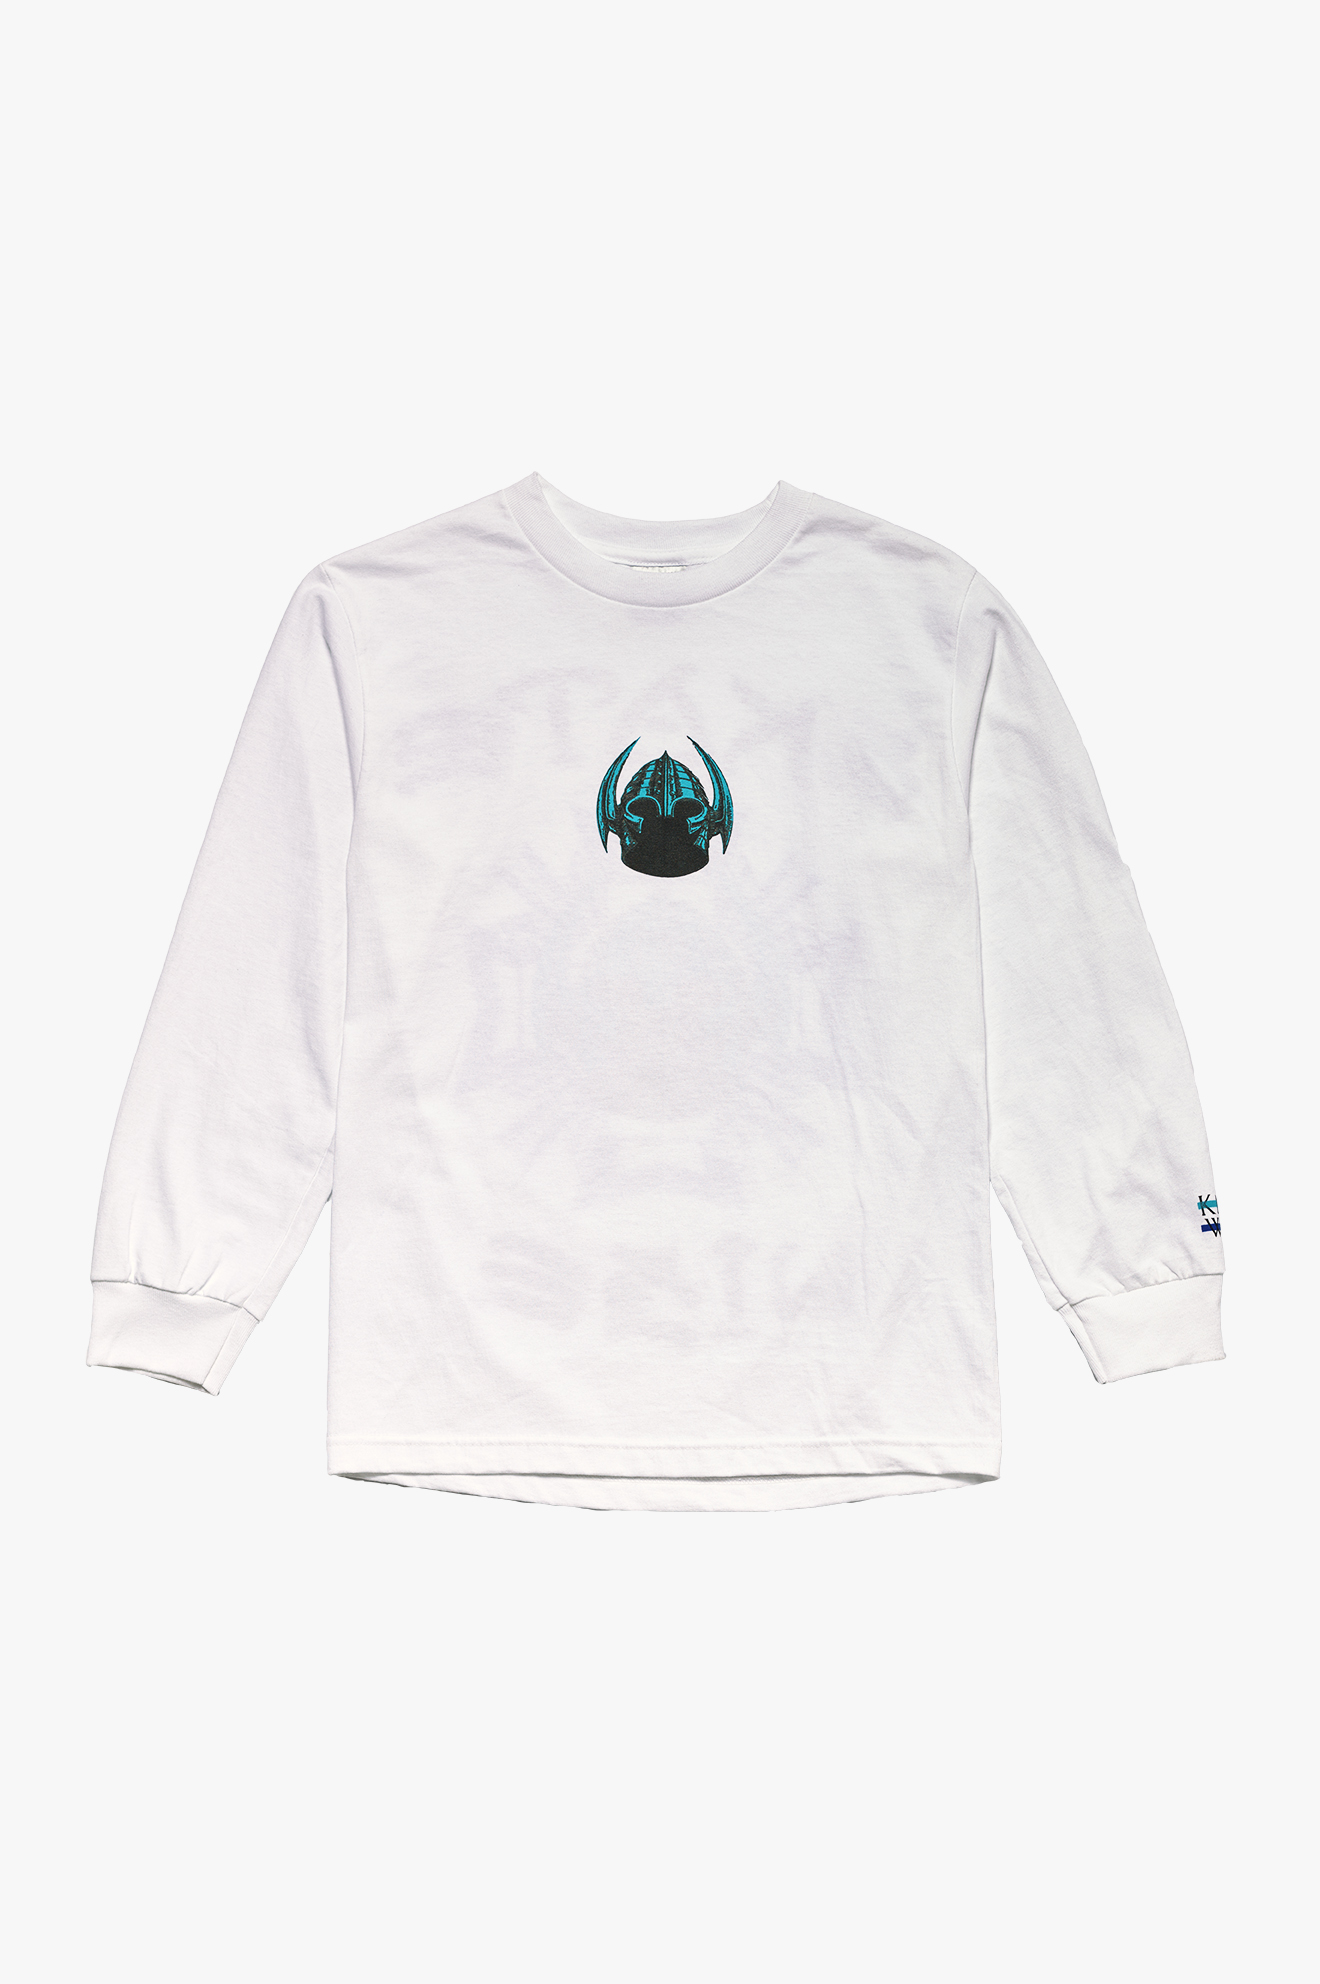 Skate Wise Long Sleeve T-Shirt White